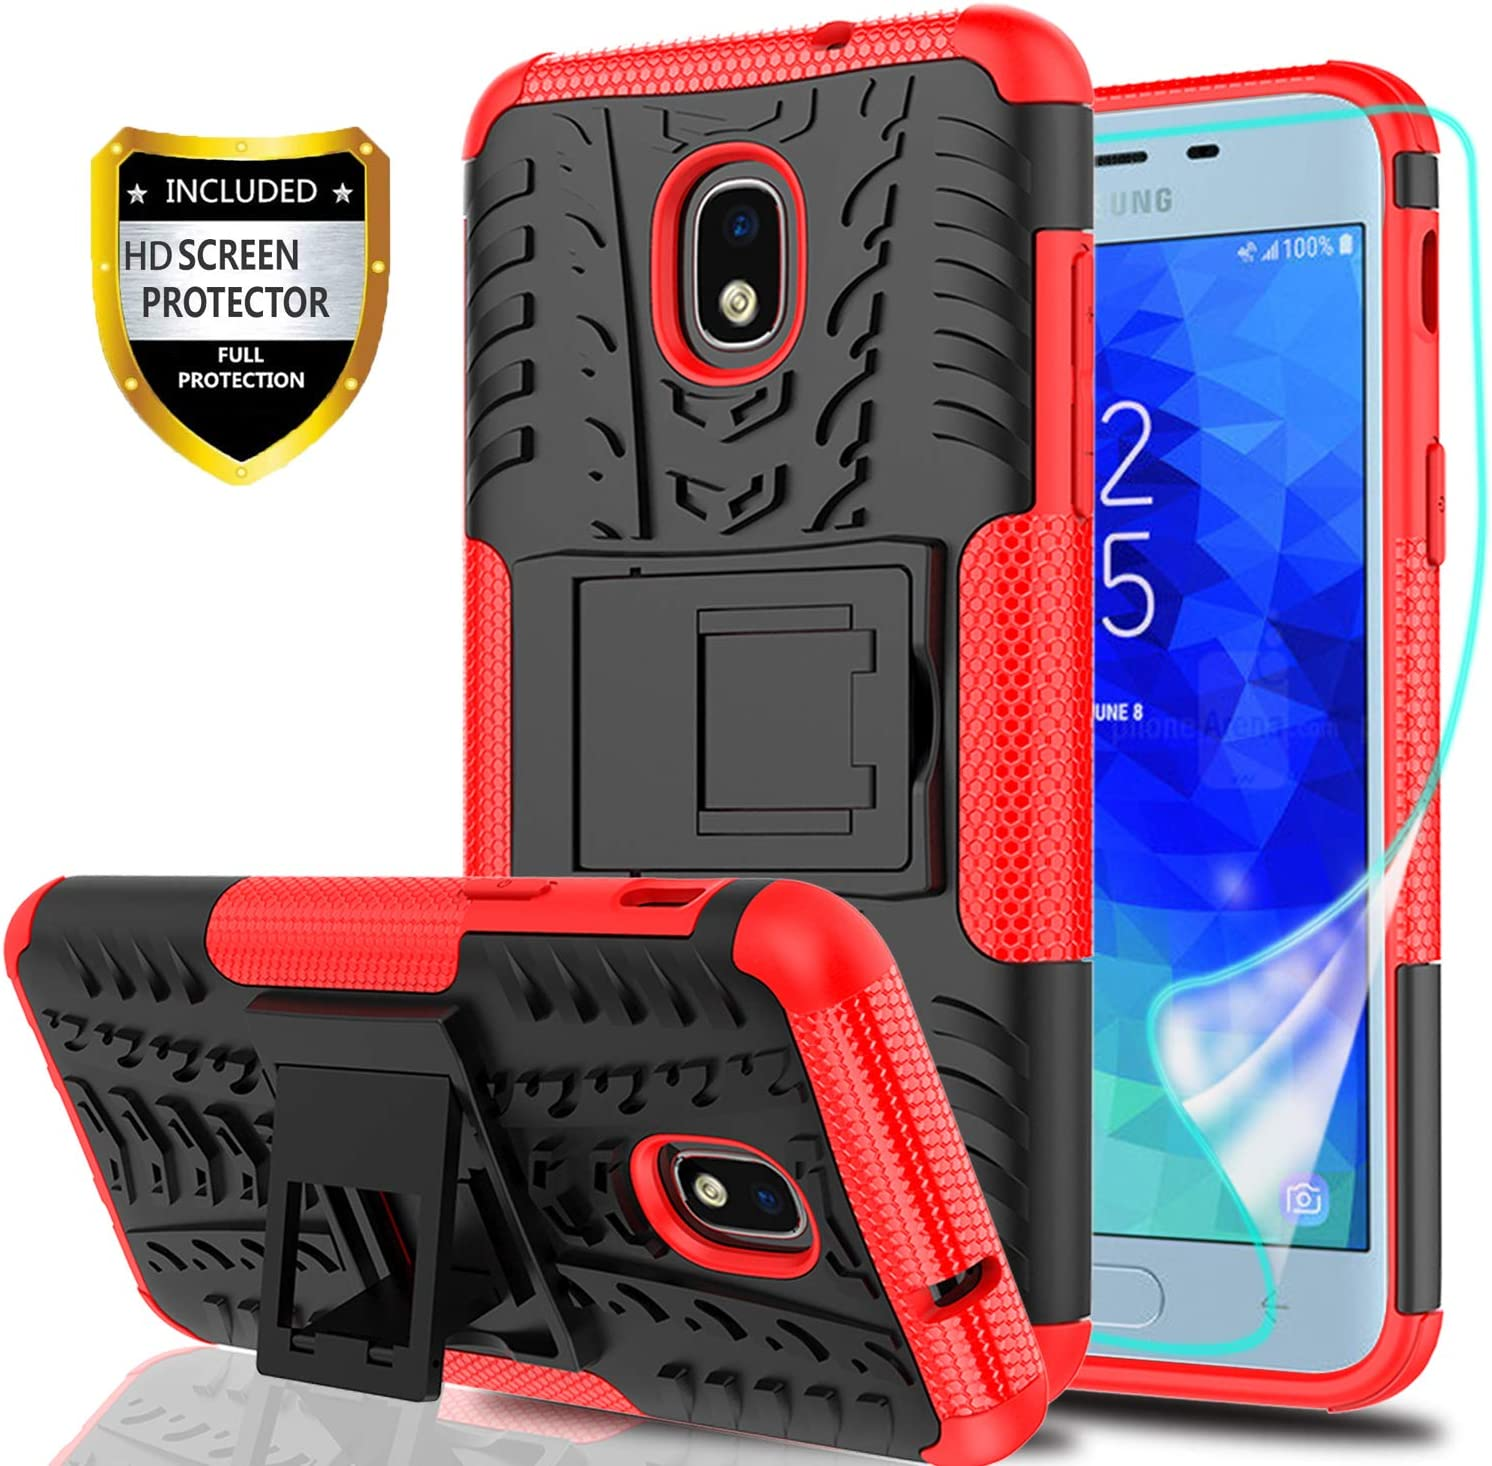 YmhxcY Galaxy J3 2018 Case,J3 Achieve//J3 Star//Express Prime 3//Amp Prime 3//J3 V 3rd Gen Case with HD Screen Protector,Military Armor Drop Tested Hybrid Case with Kickstand for Samsung J3 2018-LT Black